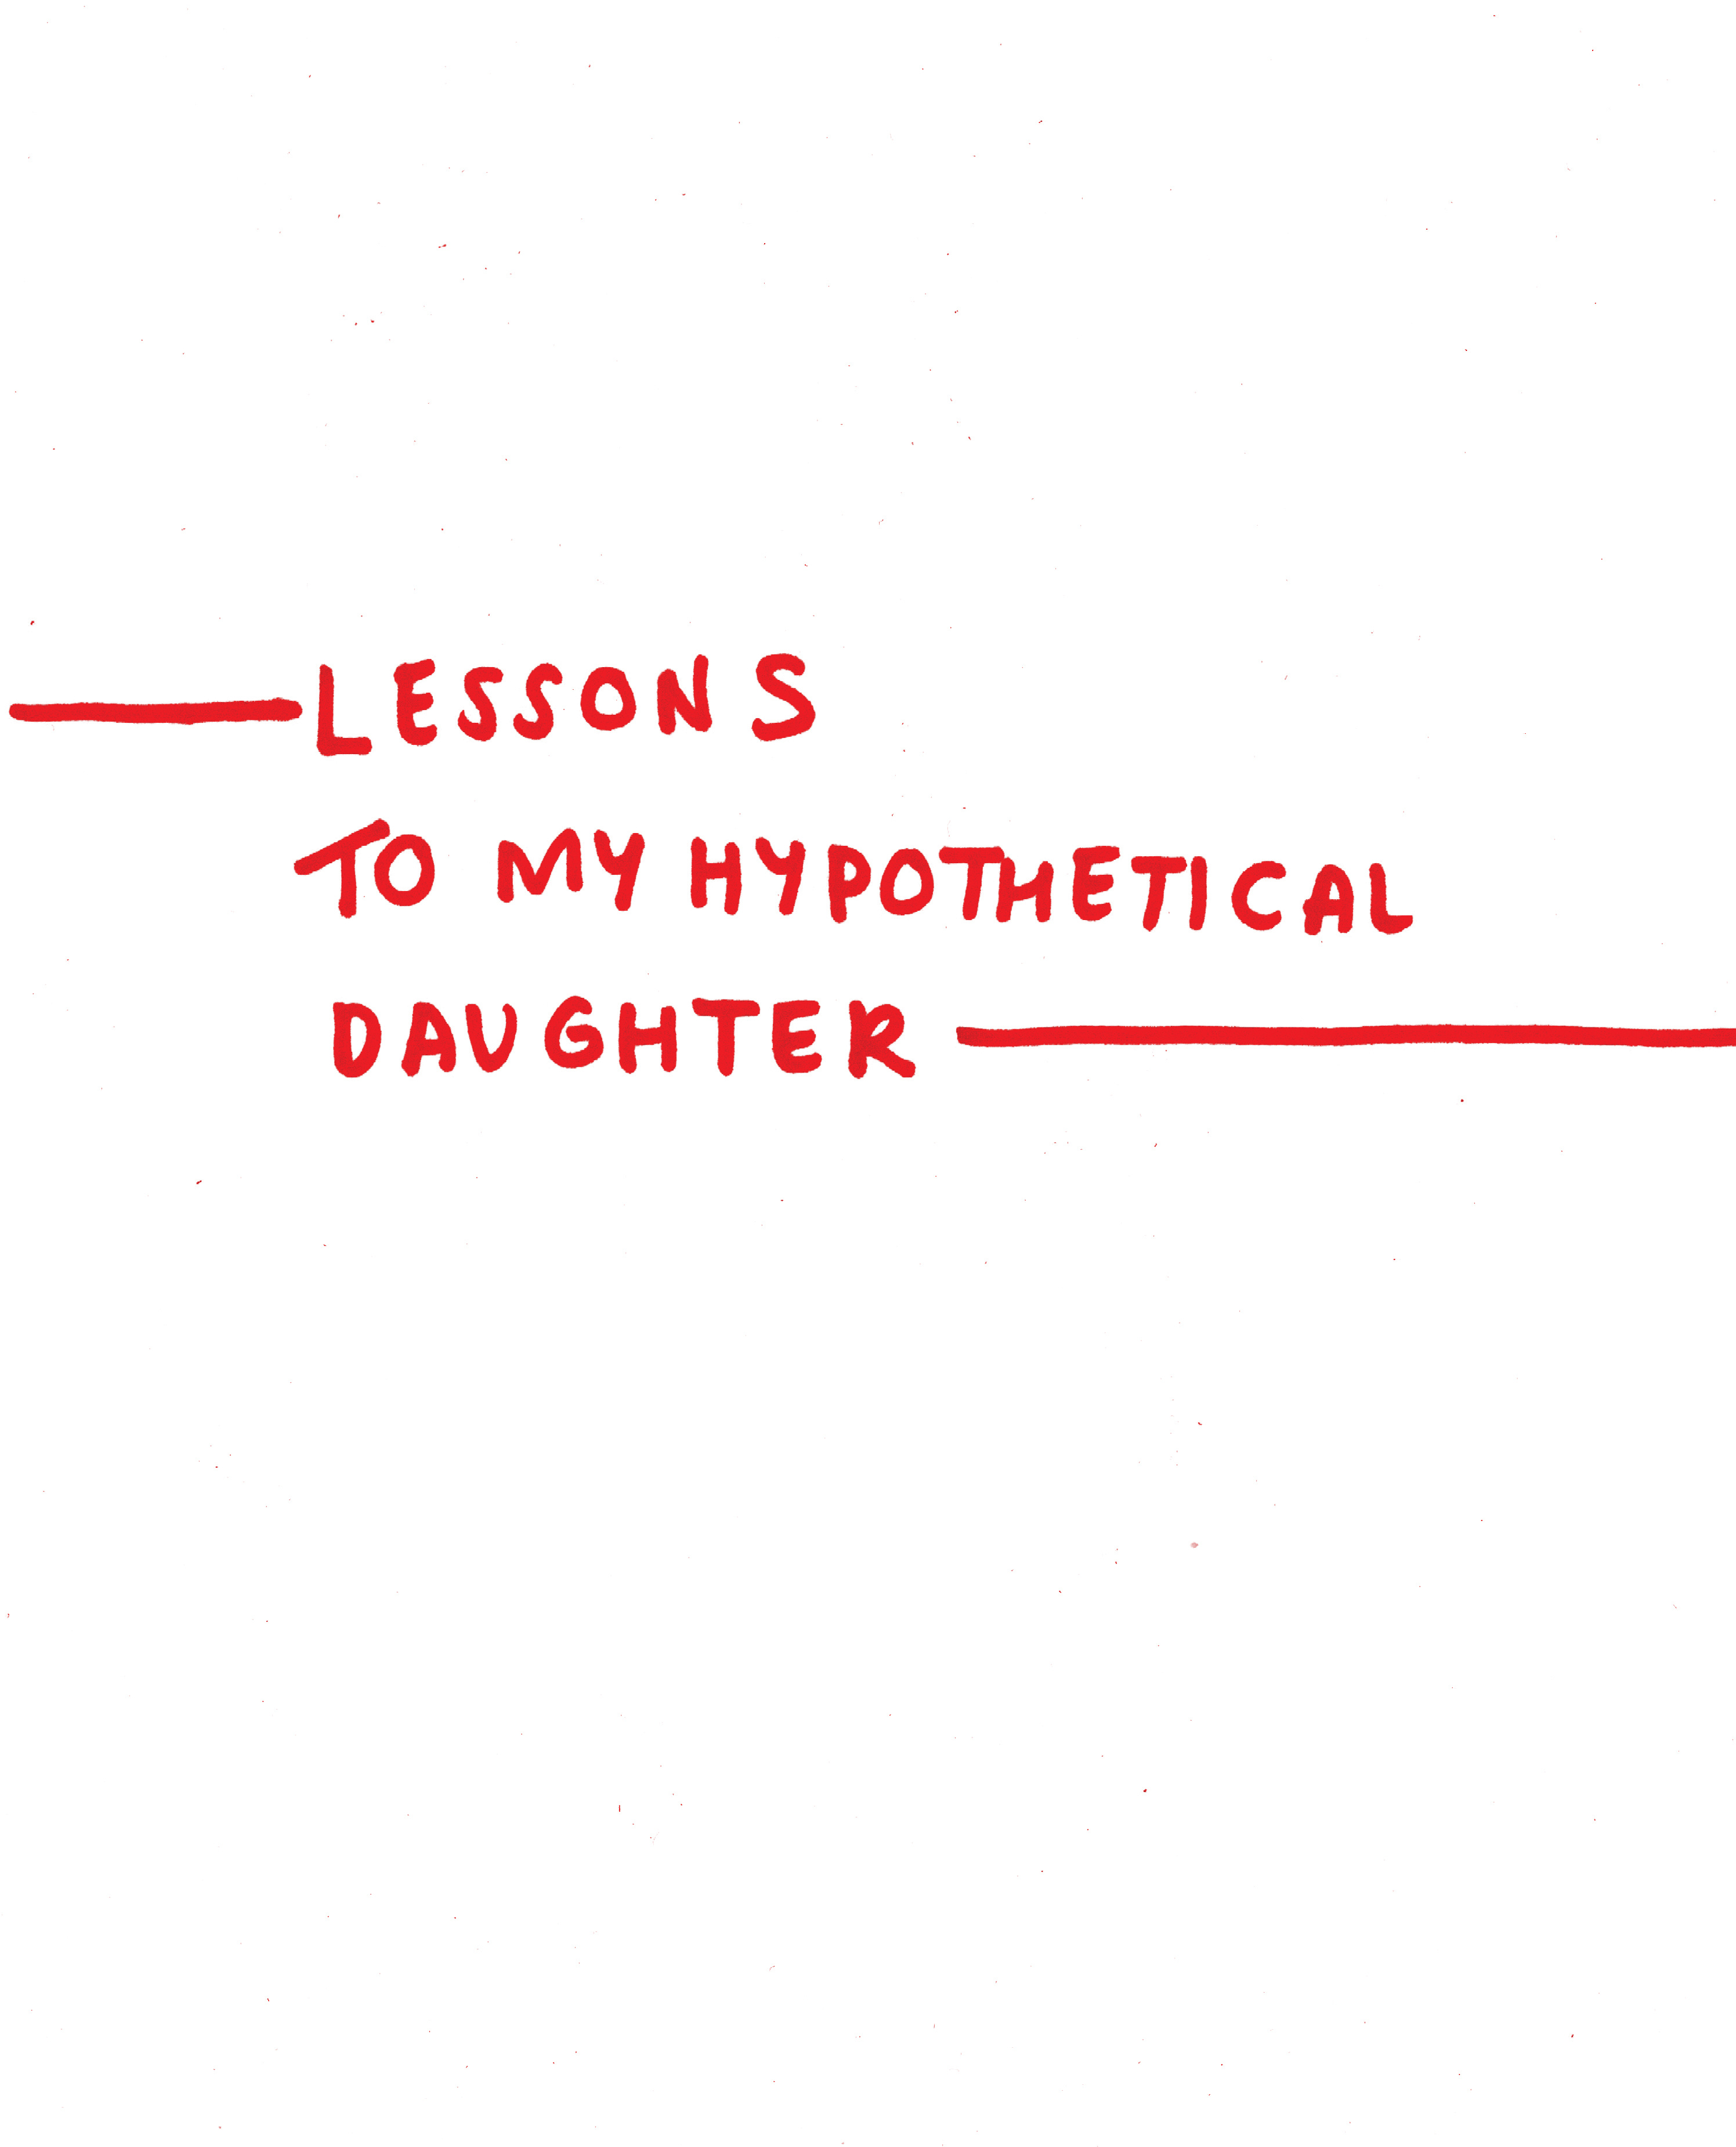 Lessons to my Hypothetical Daughter